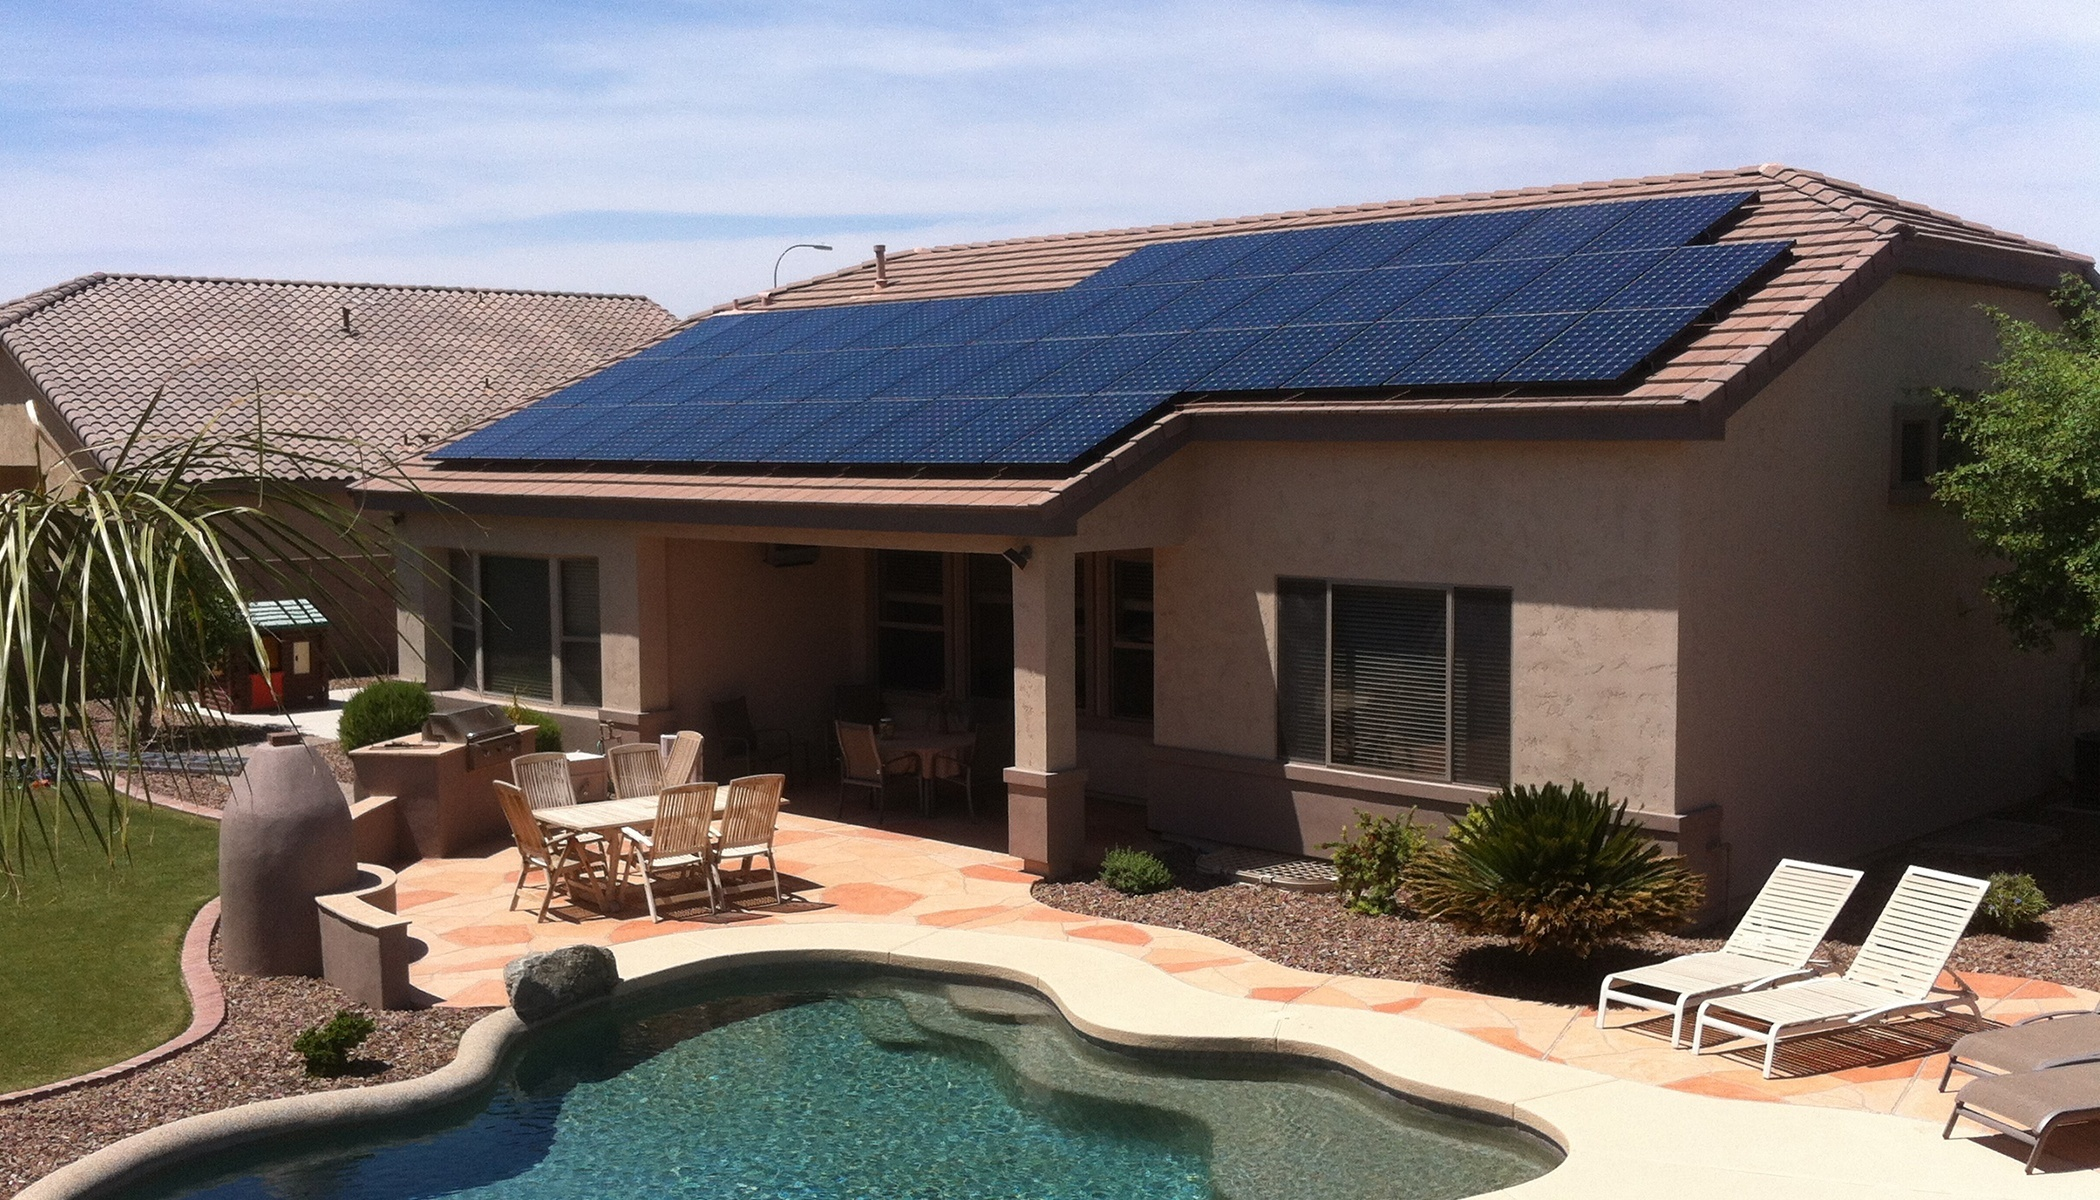 4 Reasons To Invest In Solar Energy In Arizona